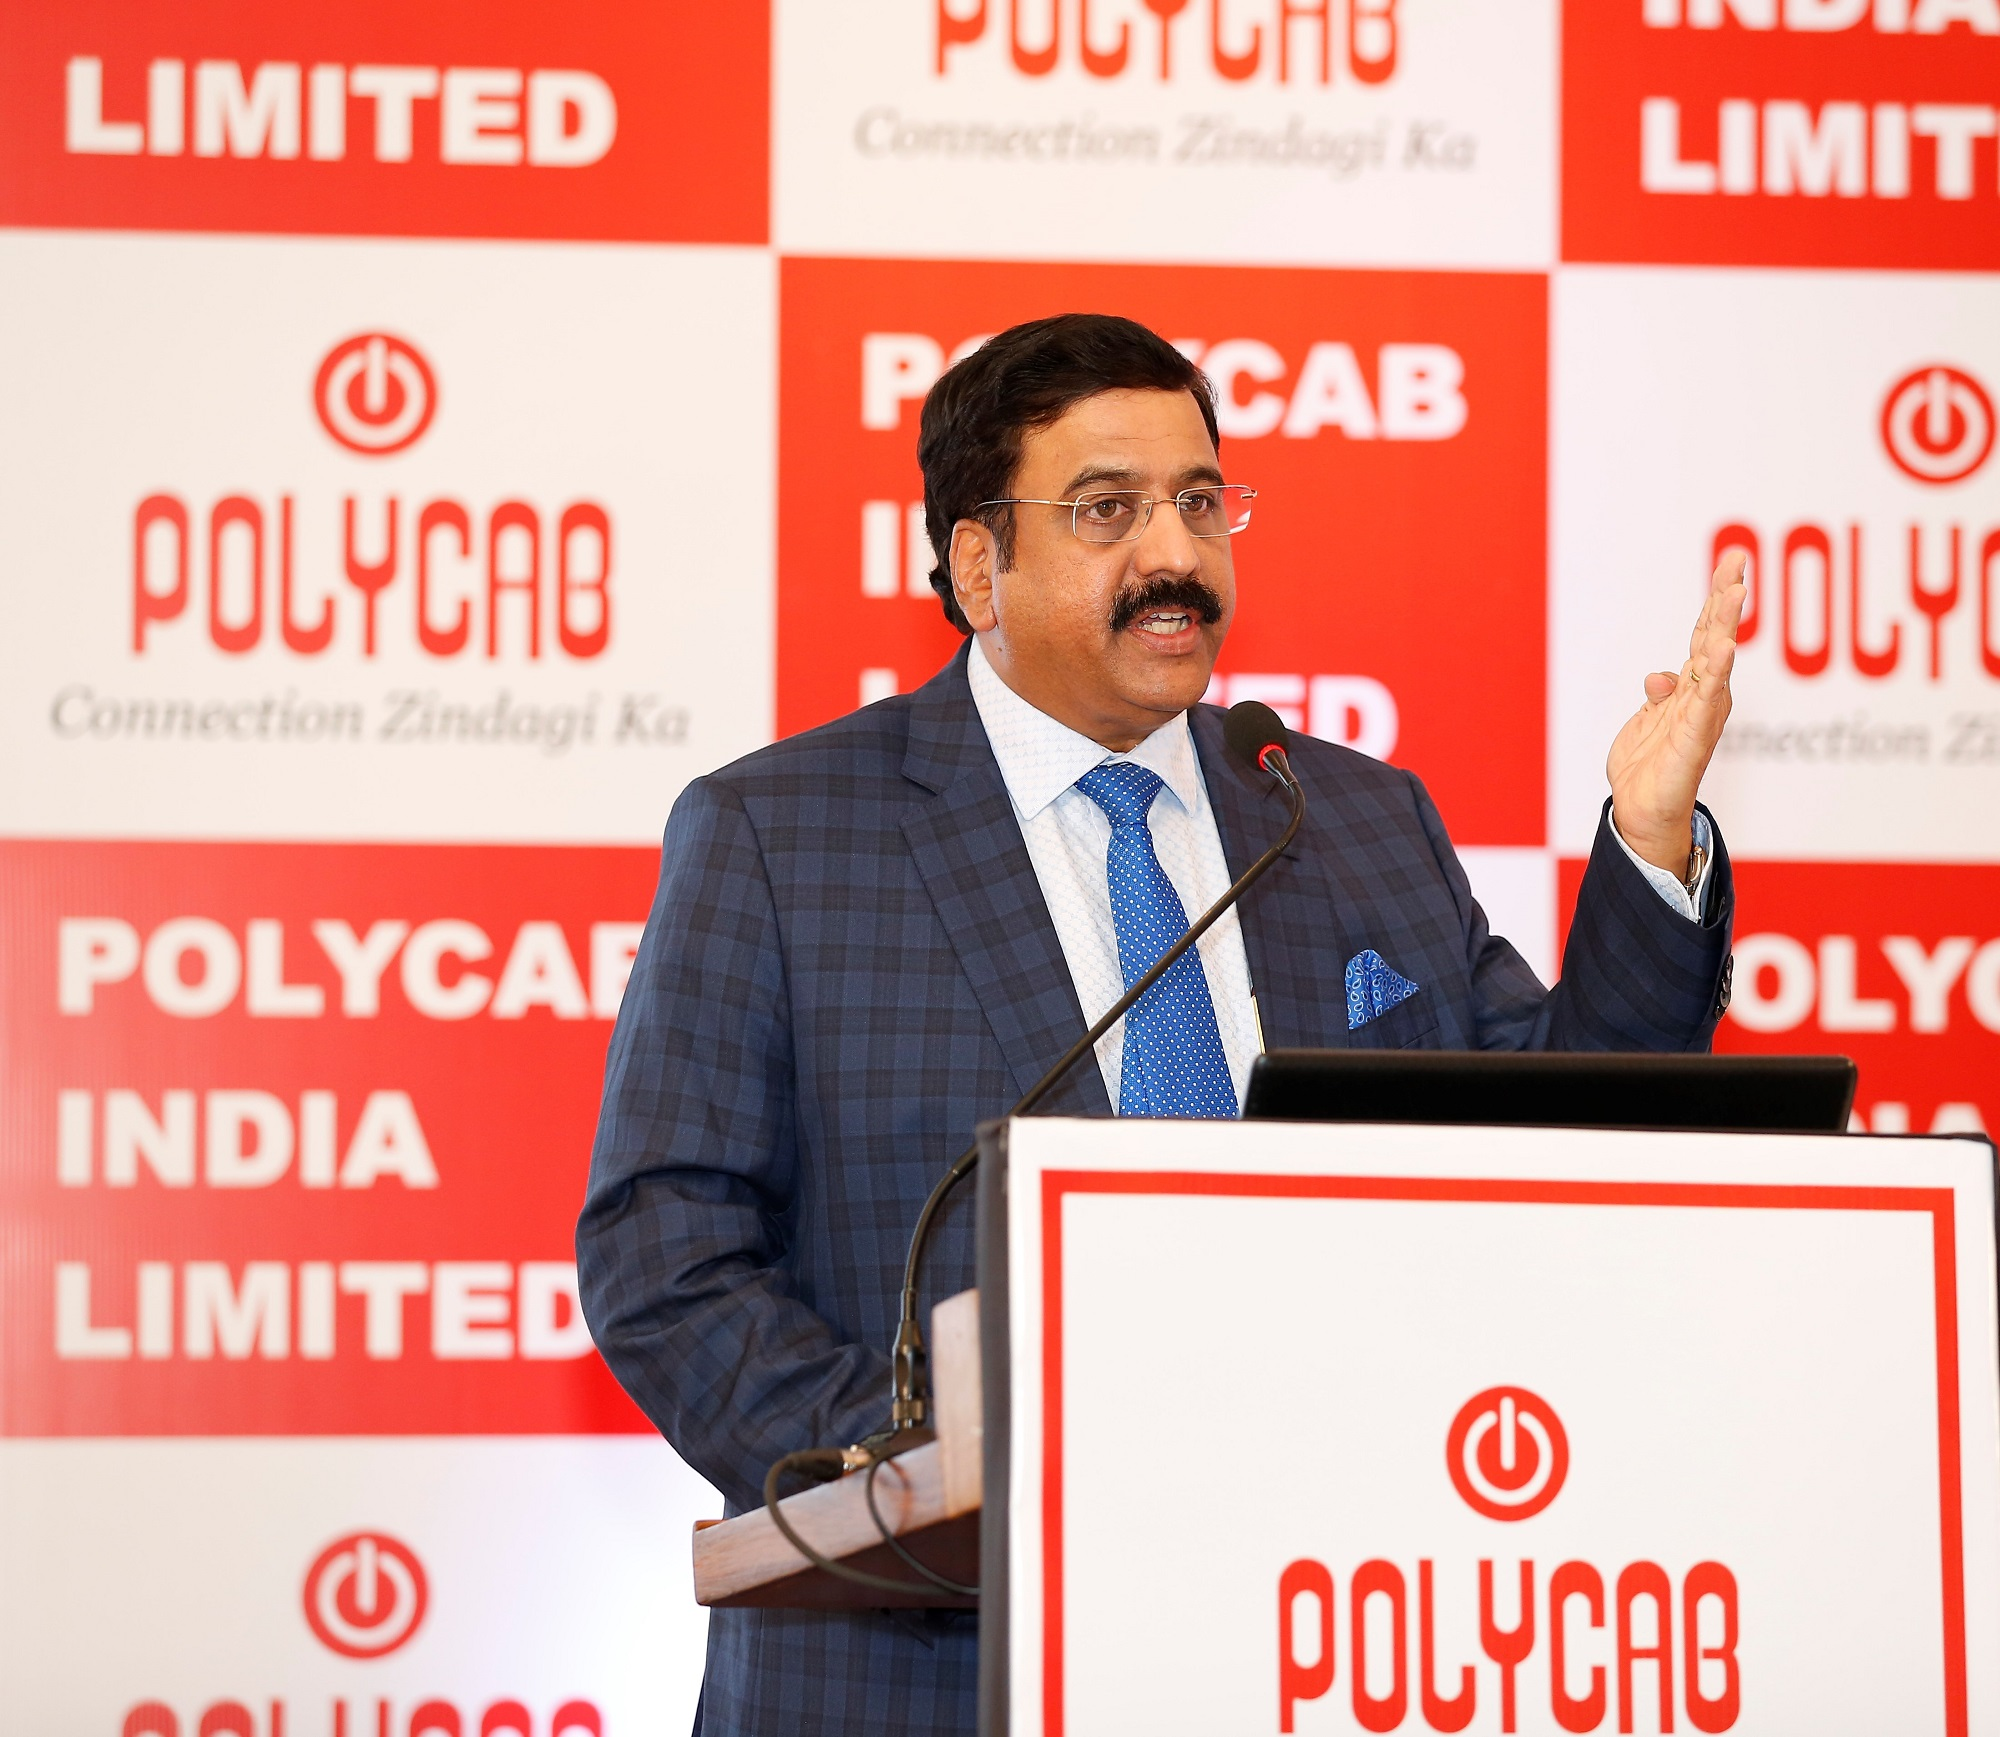 Mr. Ramakrishnan Ramamurthi (Chief Executive), Polycab India Ltd addressing the media at a press conference held in Mumbai today.- By Sachin Murdeshwar GPN News Network